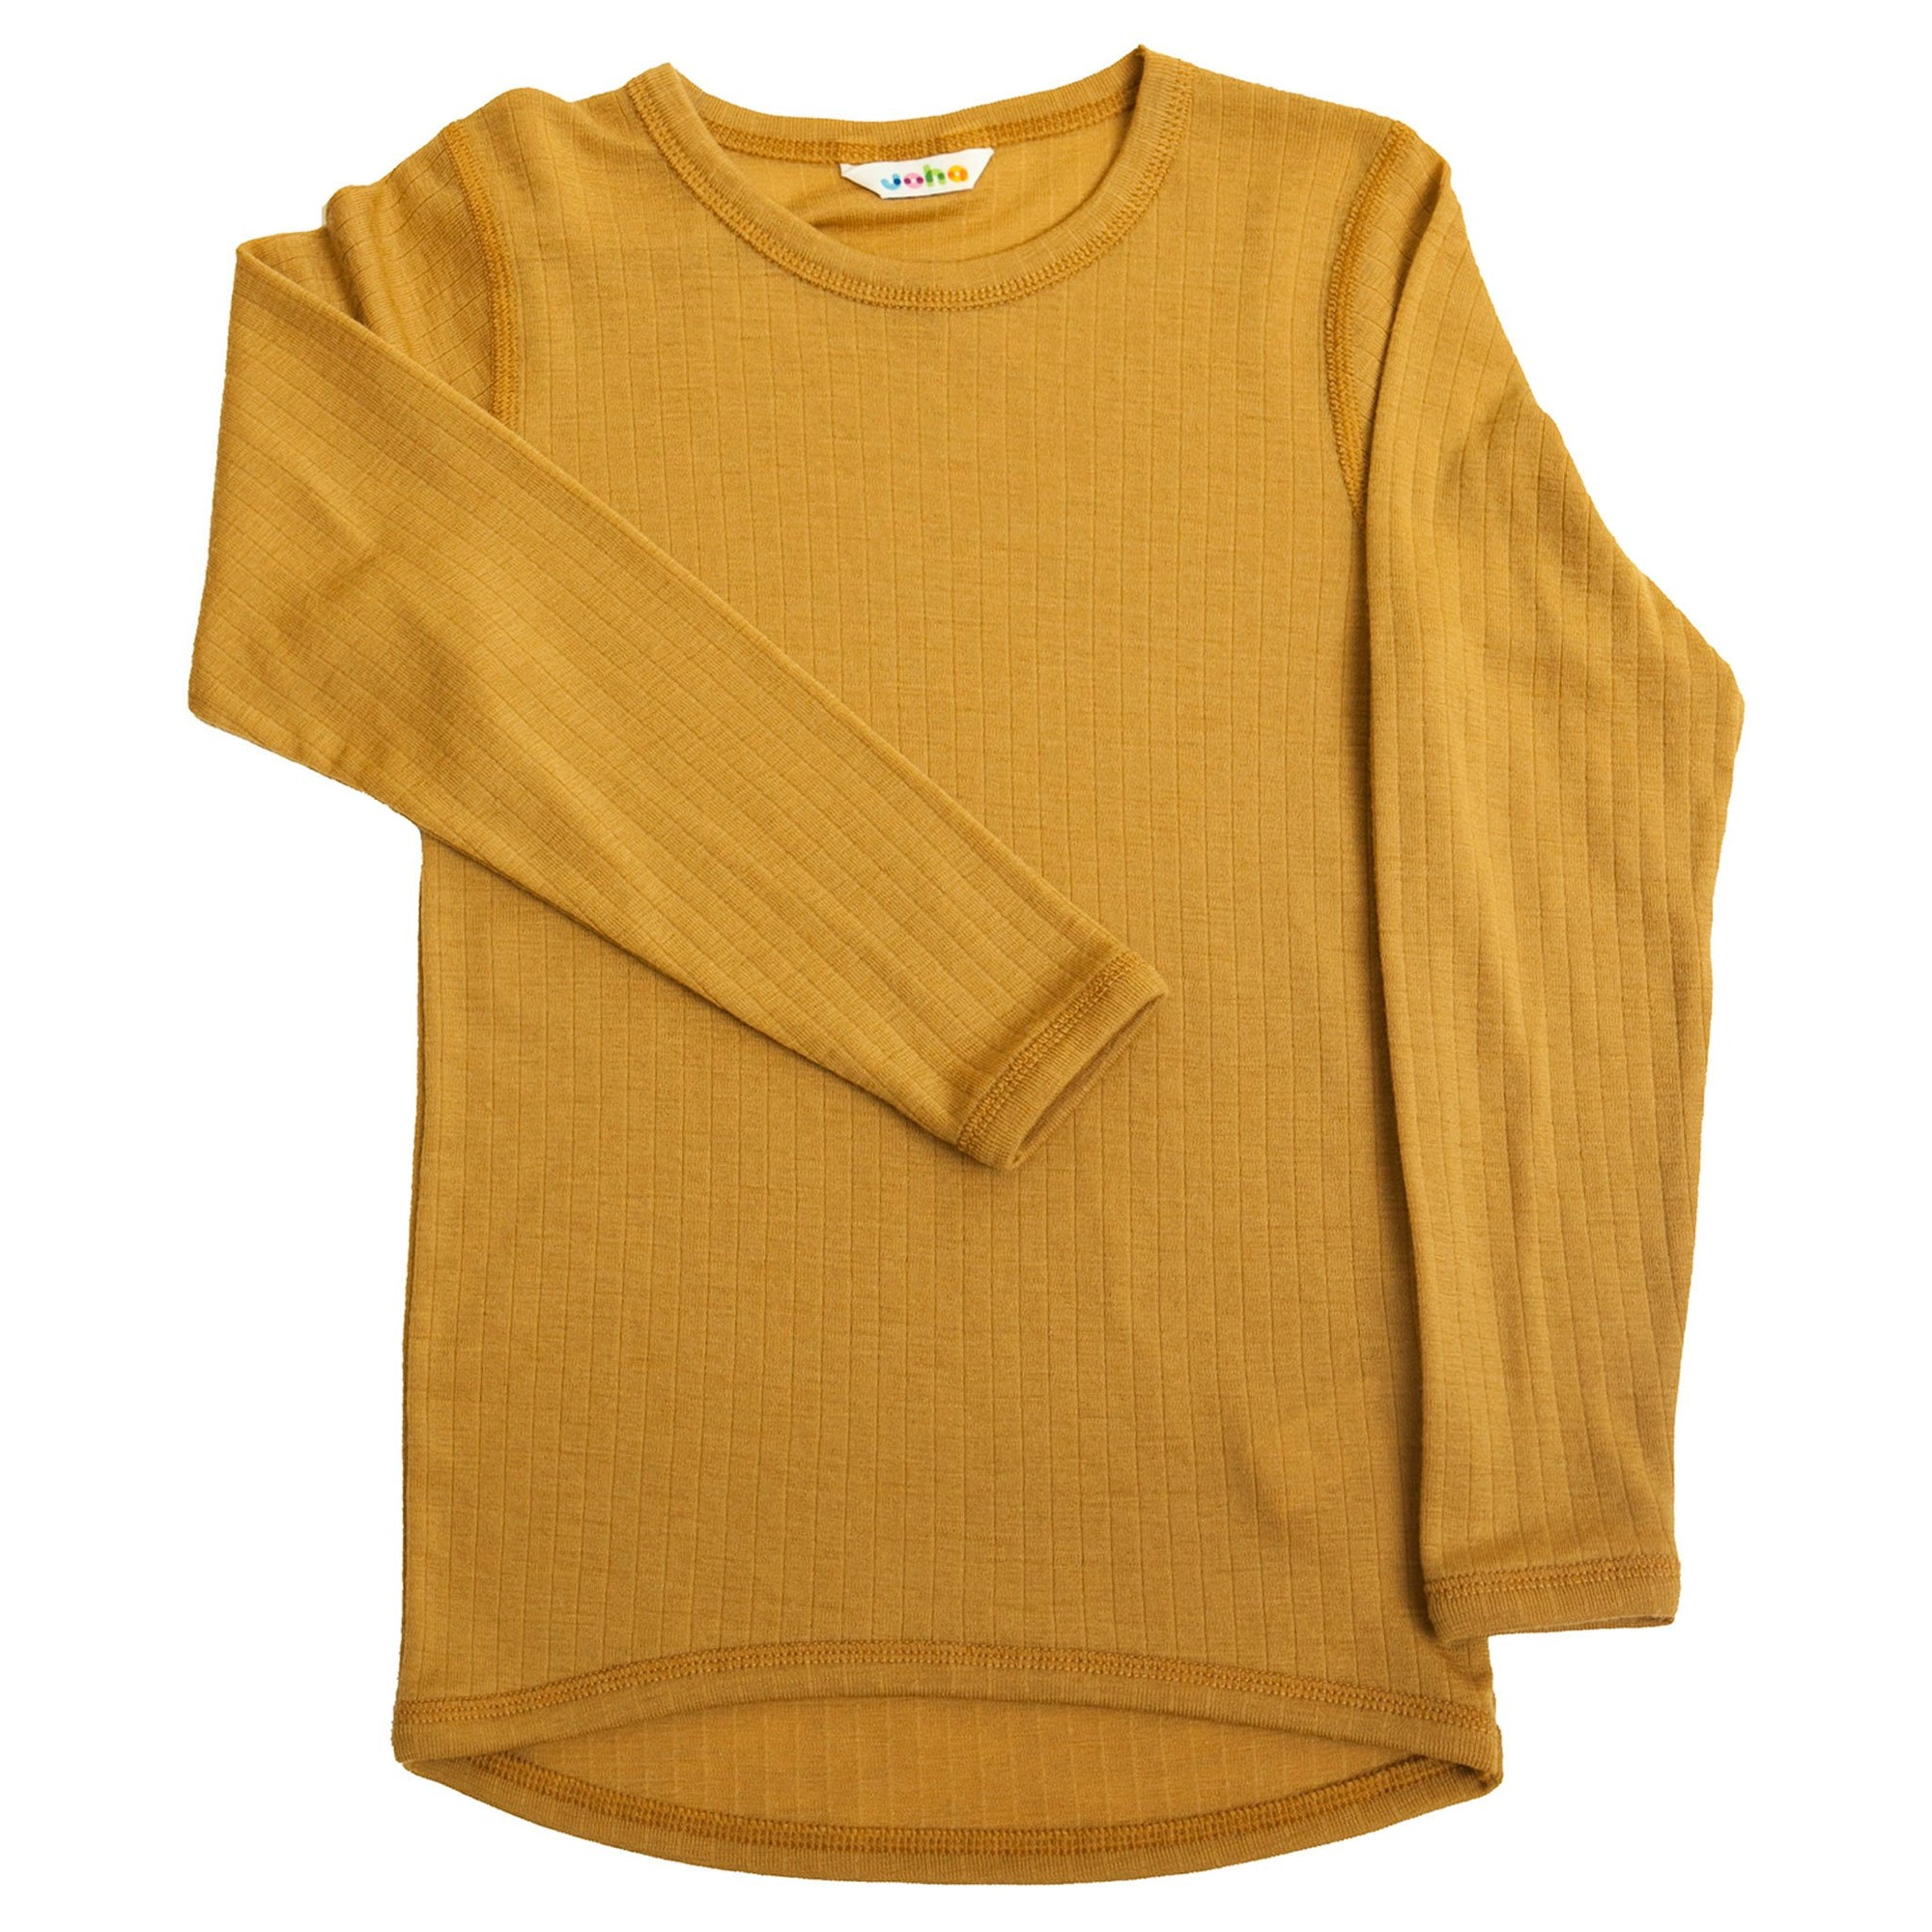 Bluza Joha lână merinos - Basic Curry Yellow-Joha-HipHip.ro